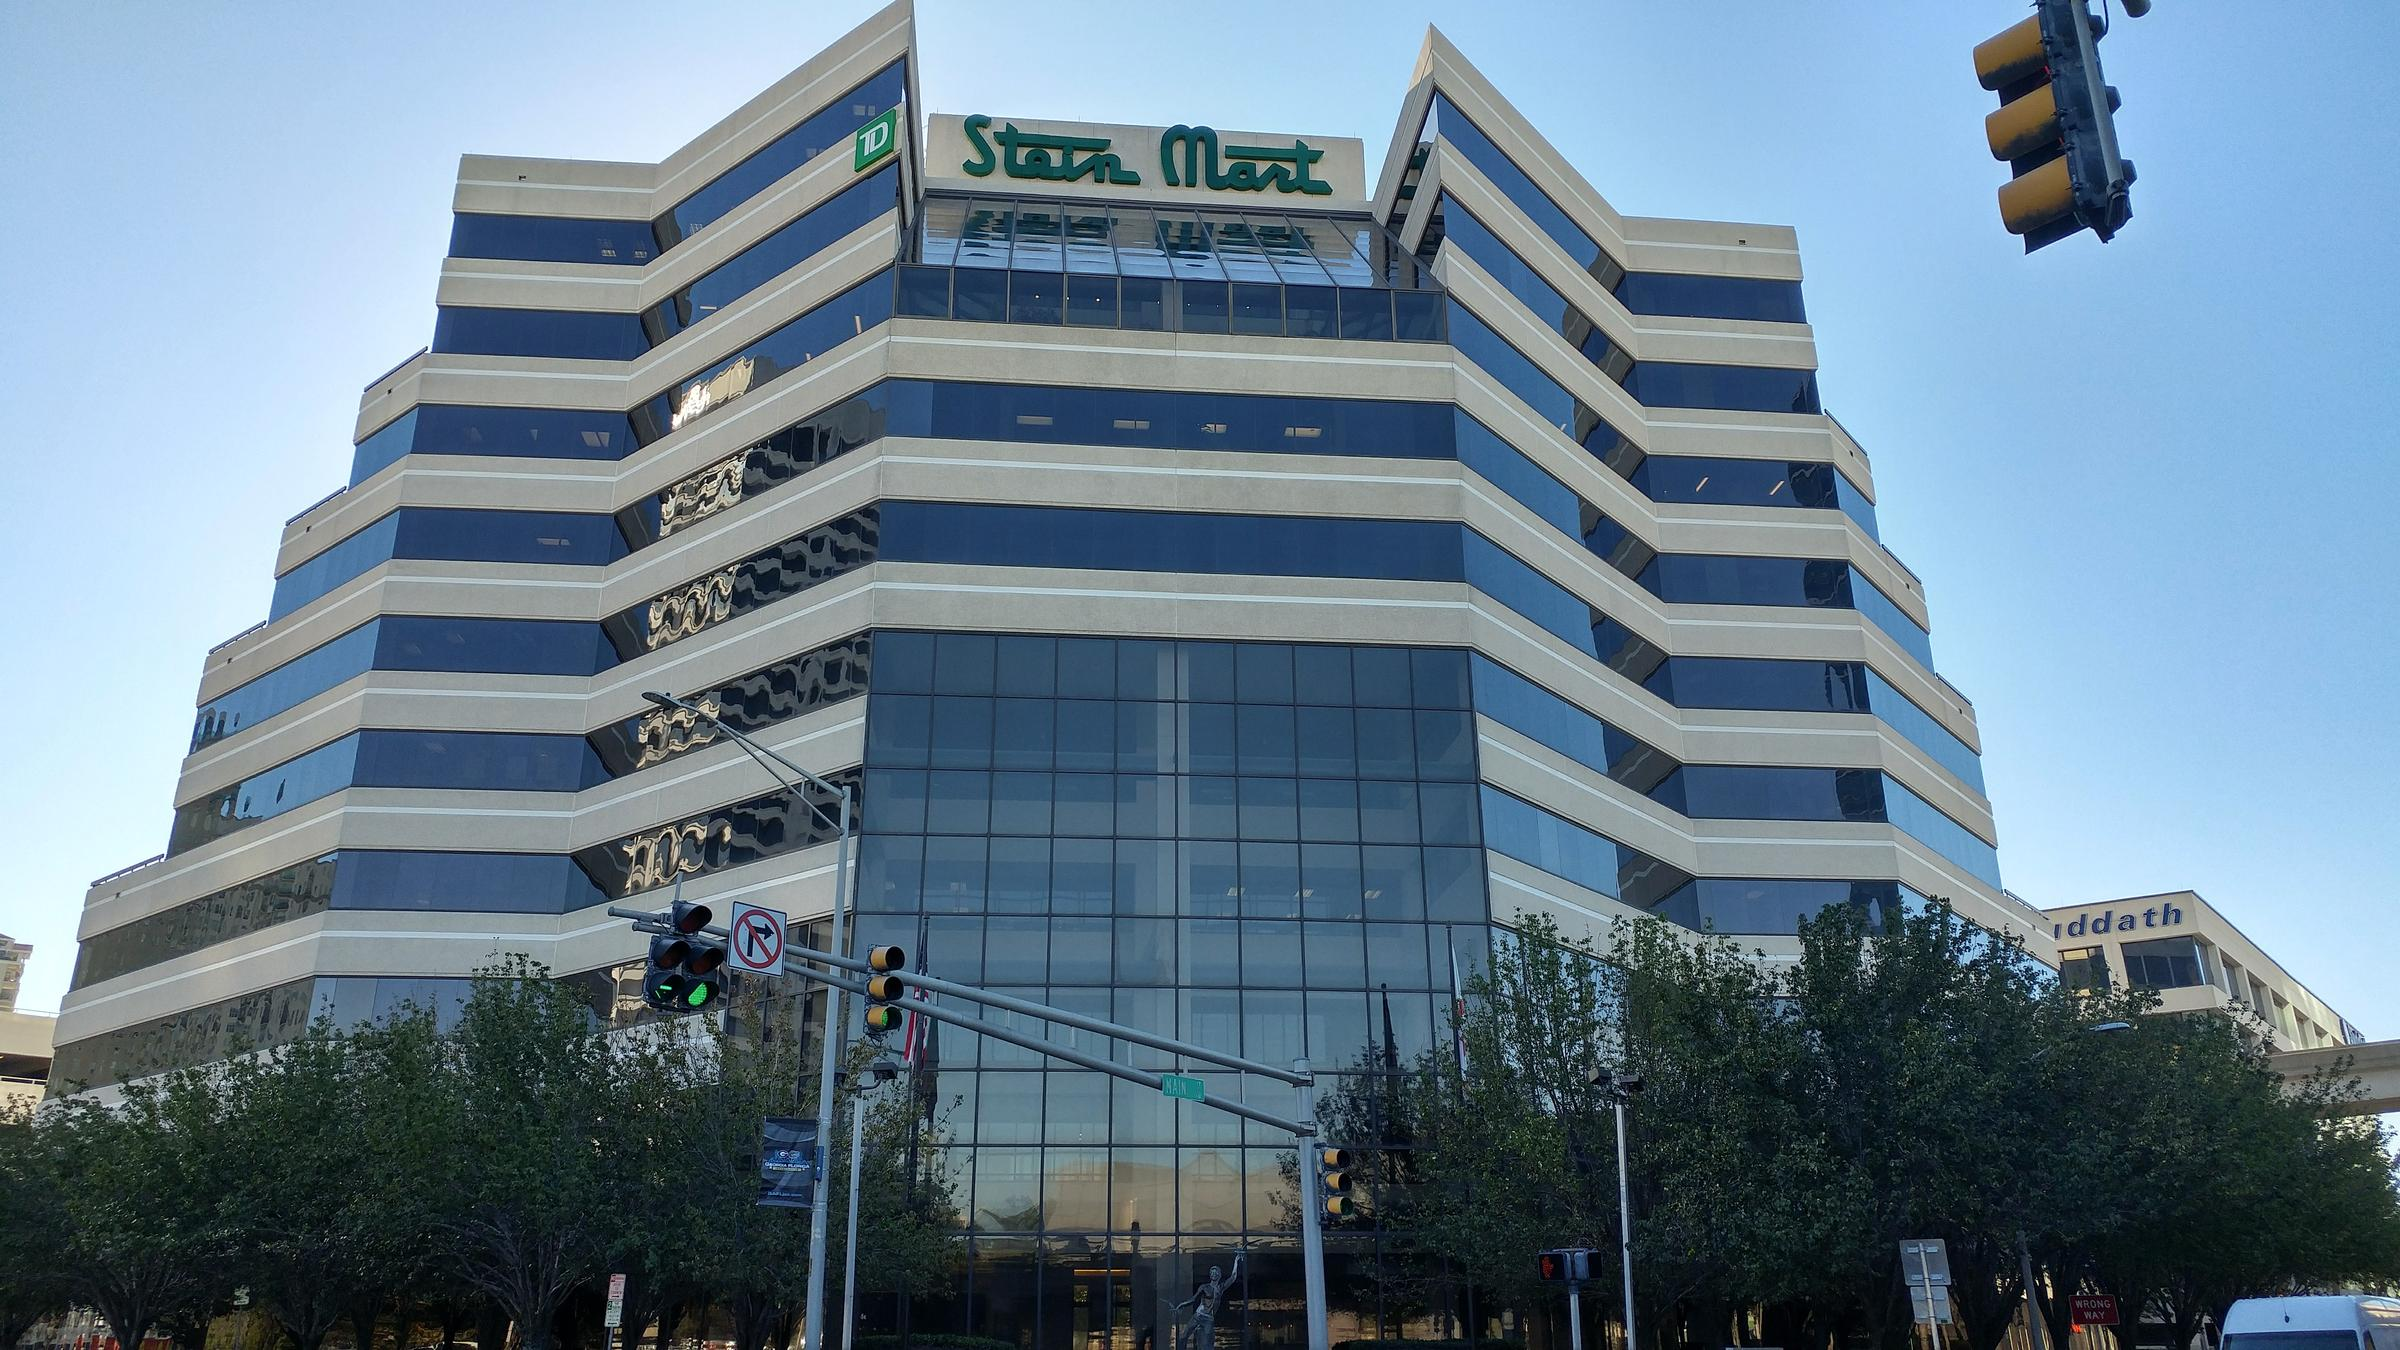 Stein Mart is an American discount men and women's department store chain based in Jacksonville, Florida. The company reported a profit of $ million [1] in .